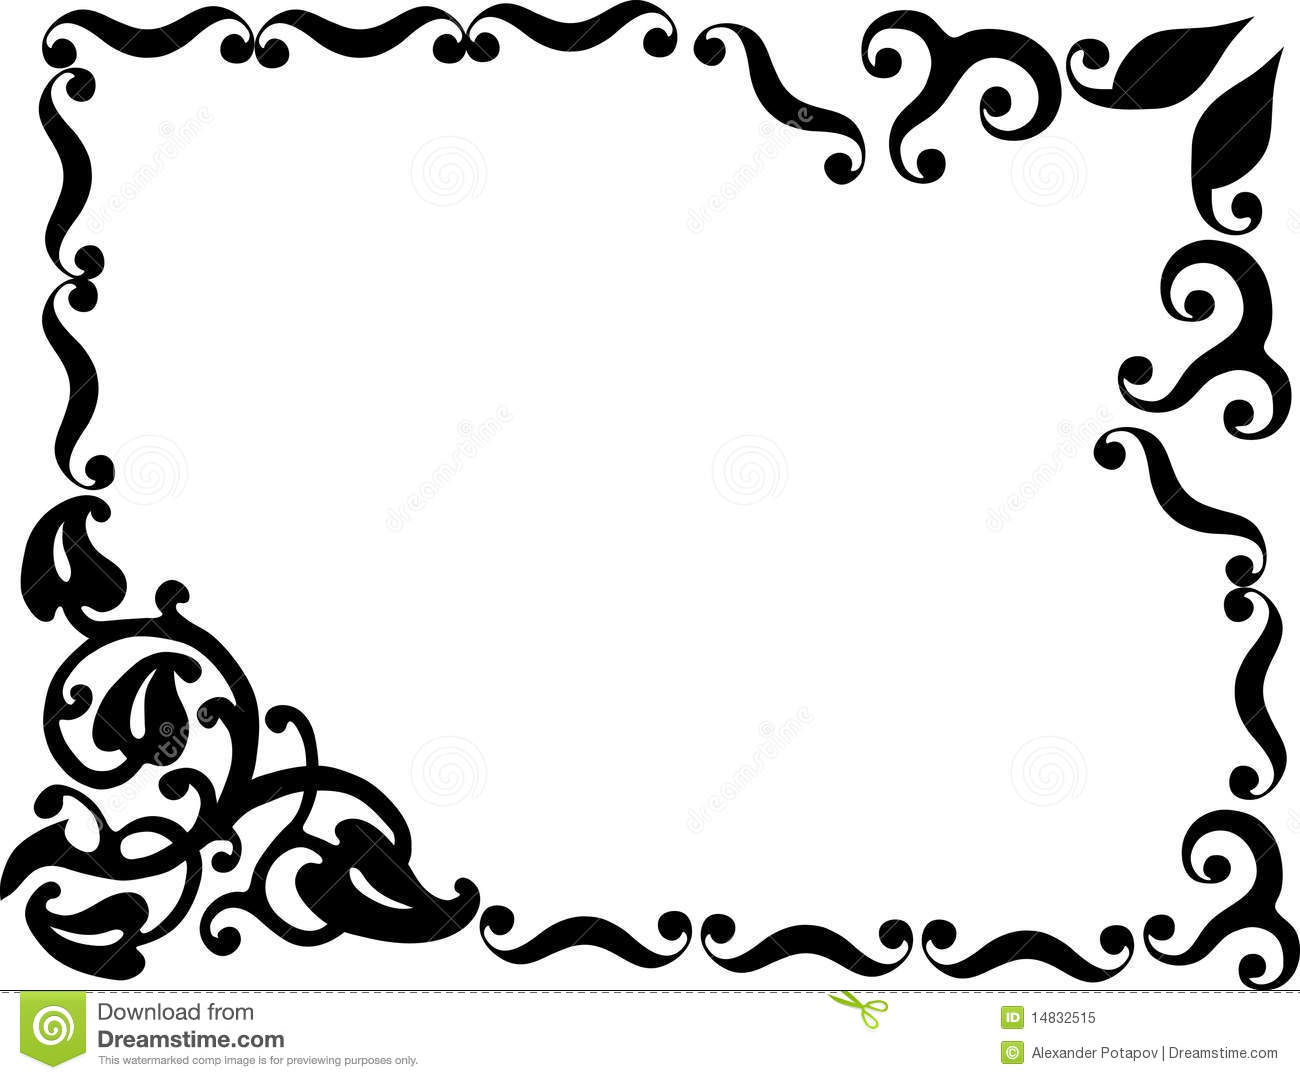 Frame Design Black And White | Galleryimage.co